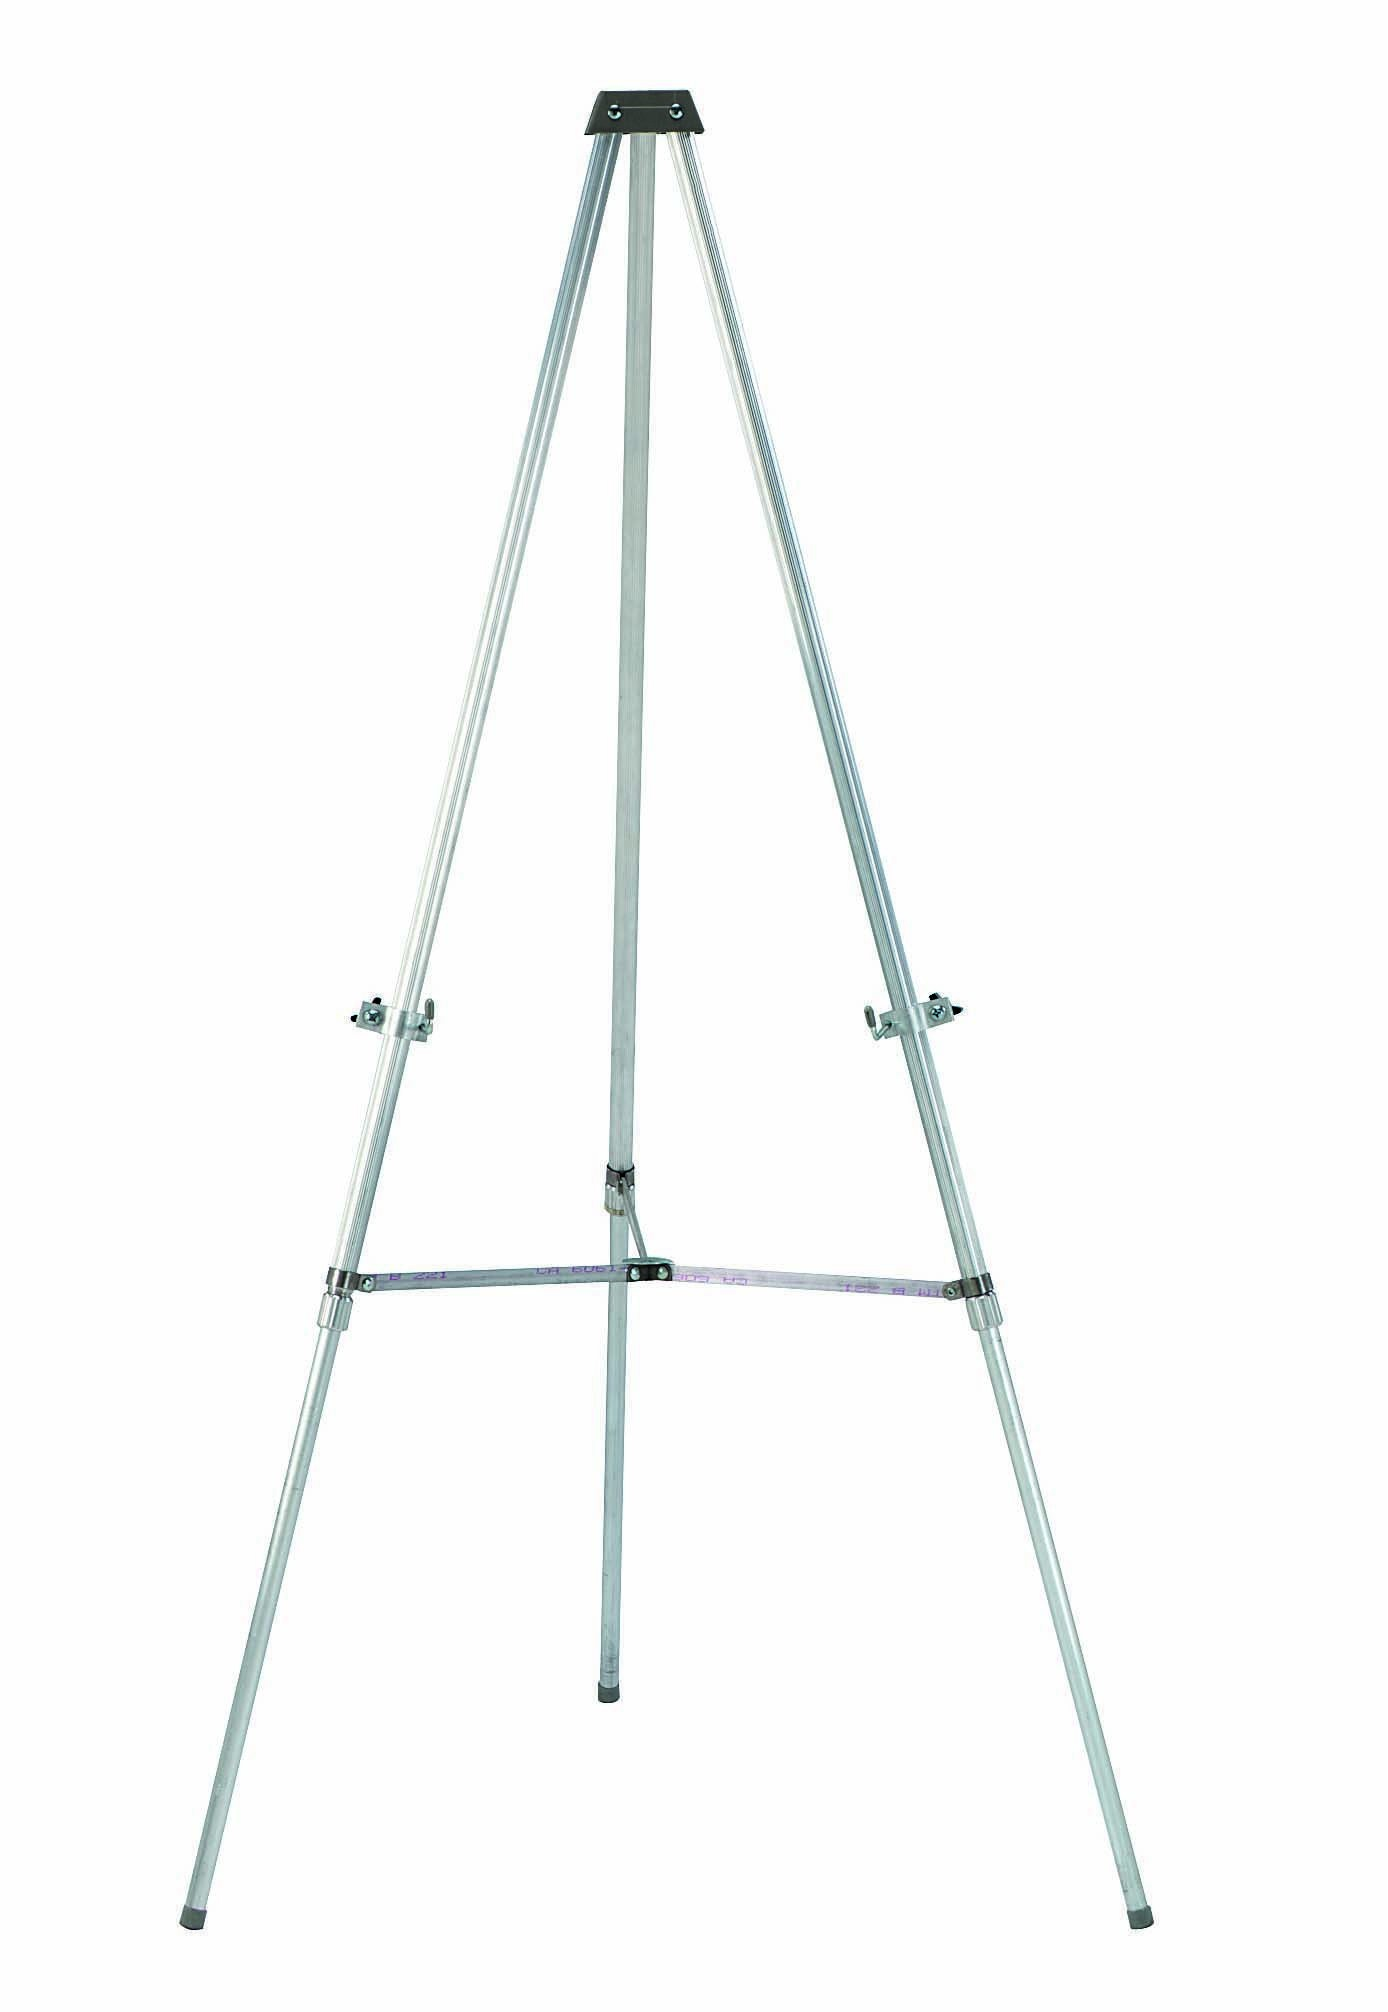 Aarco Products AE66 Aluminum Telescopic Display Easel for Flip Charts